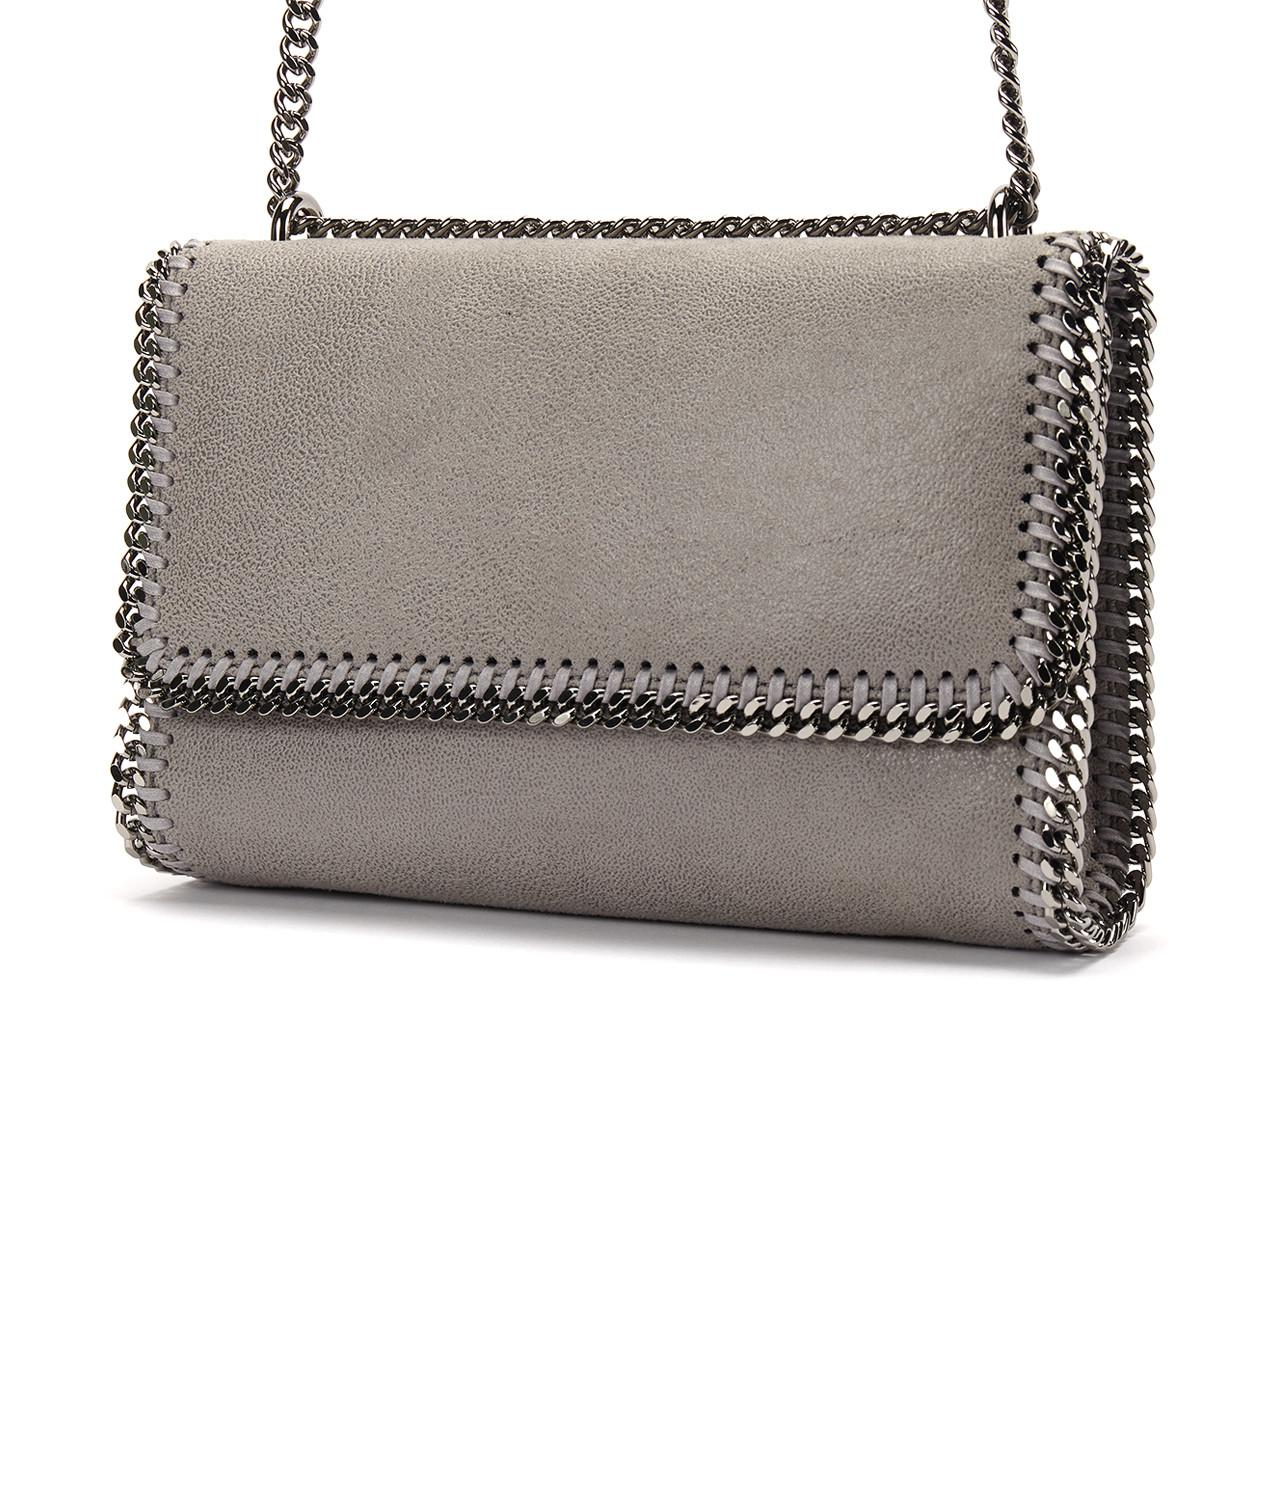 ec5b6fd0f5 Gallery. Previously sold at  Nowlet · Women s Stella Mccartney Falabella ...